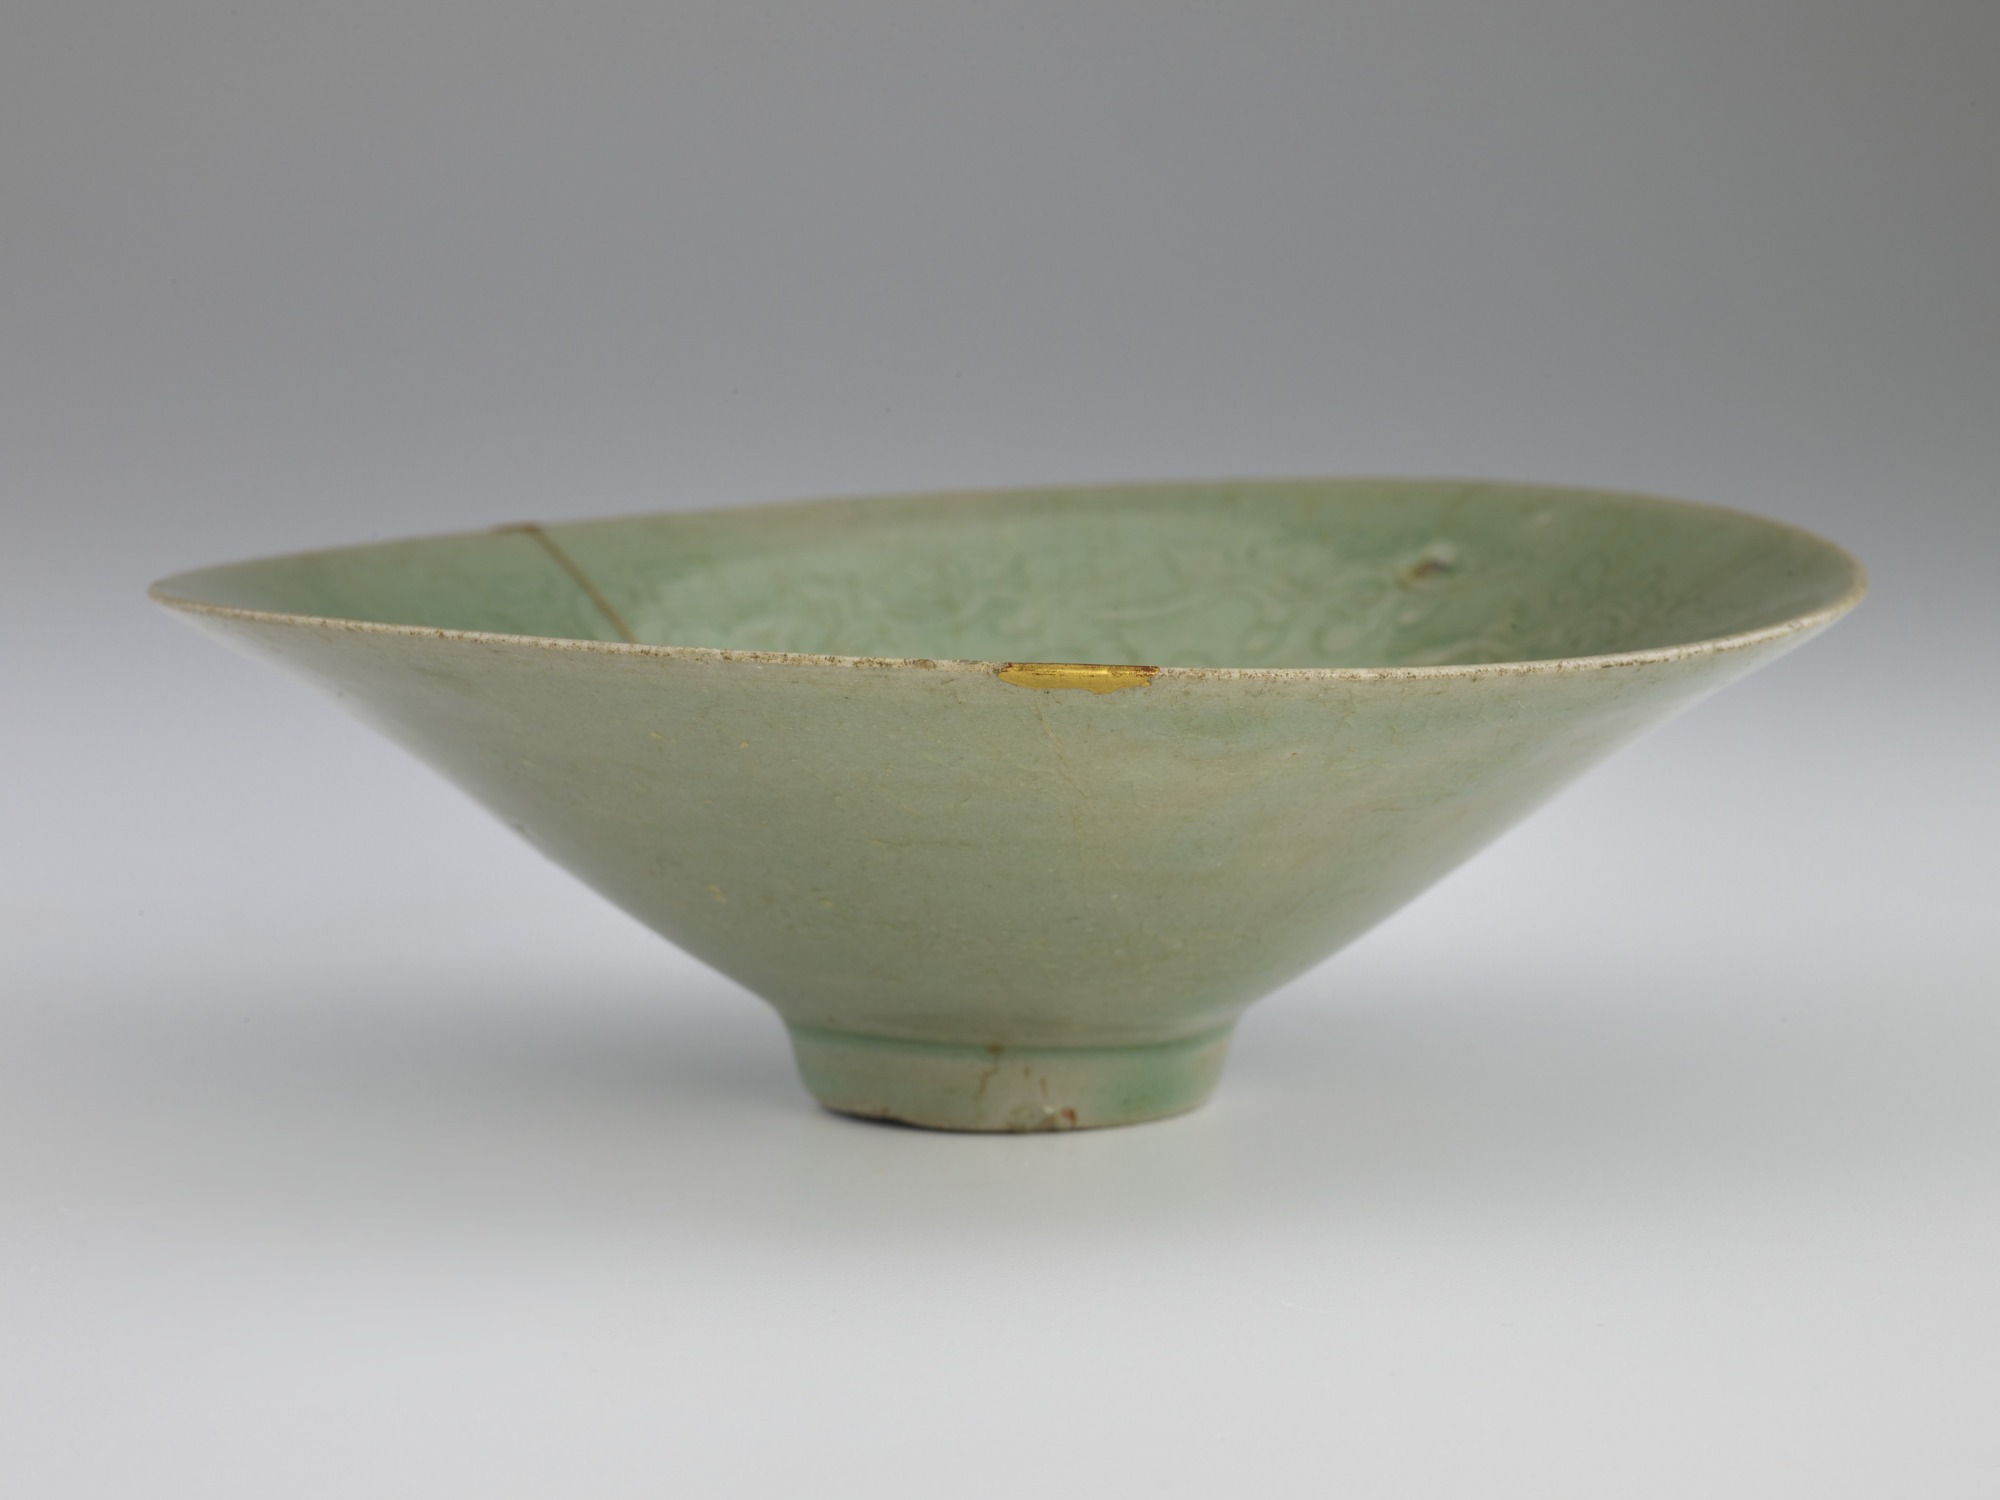 Bowl with molded and incised design of cranes and clouds, profile